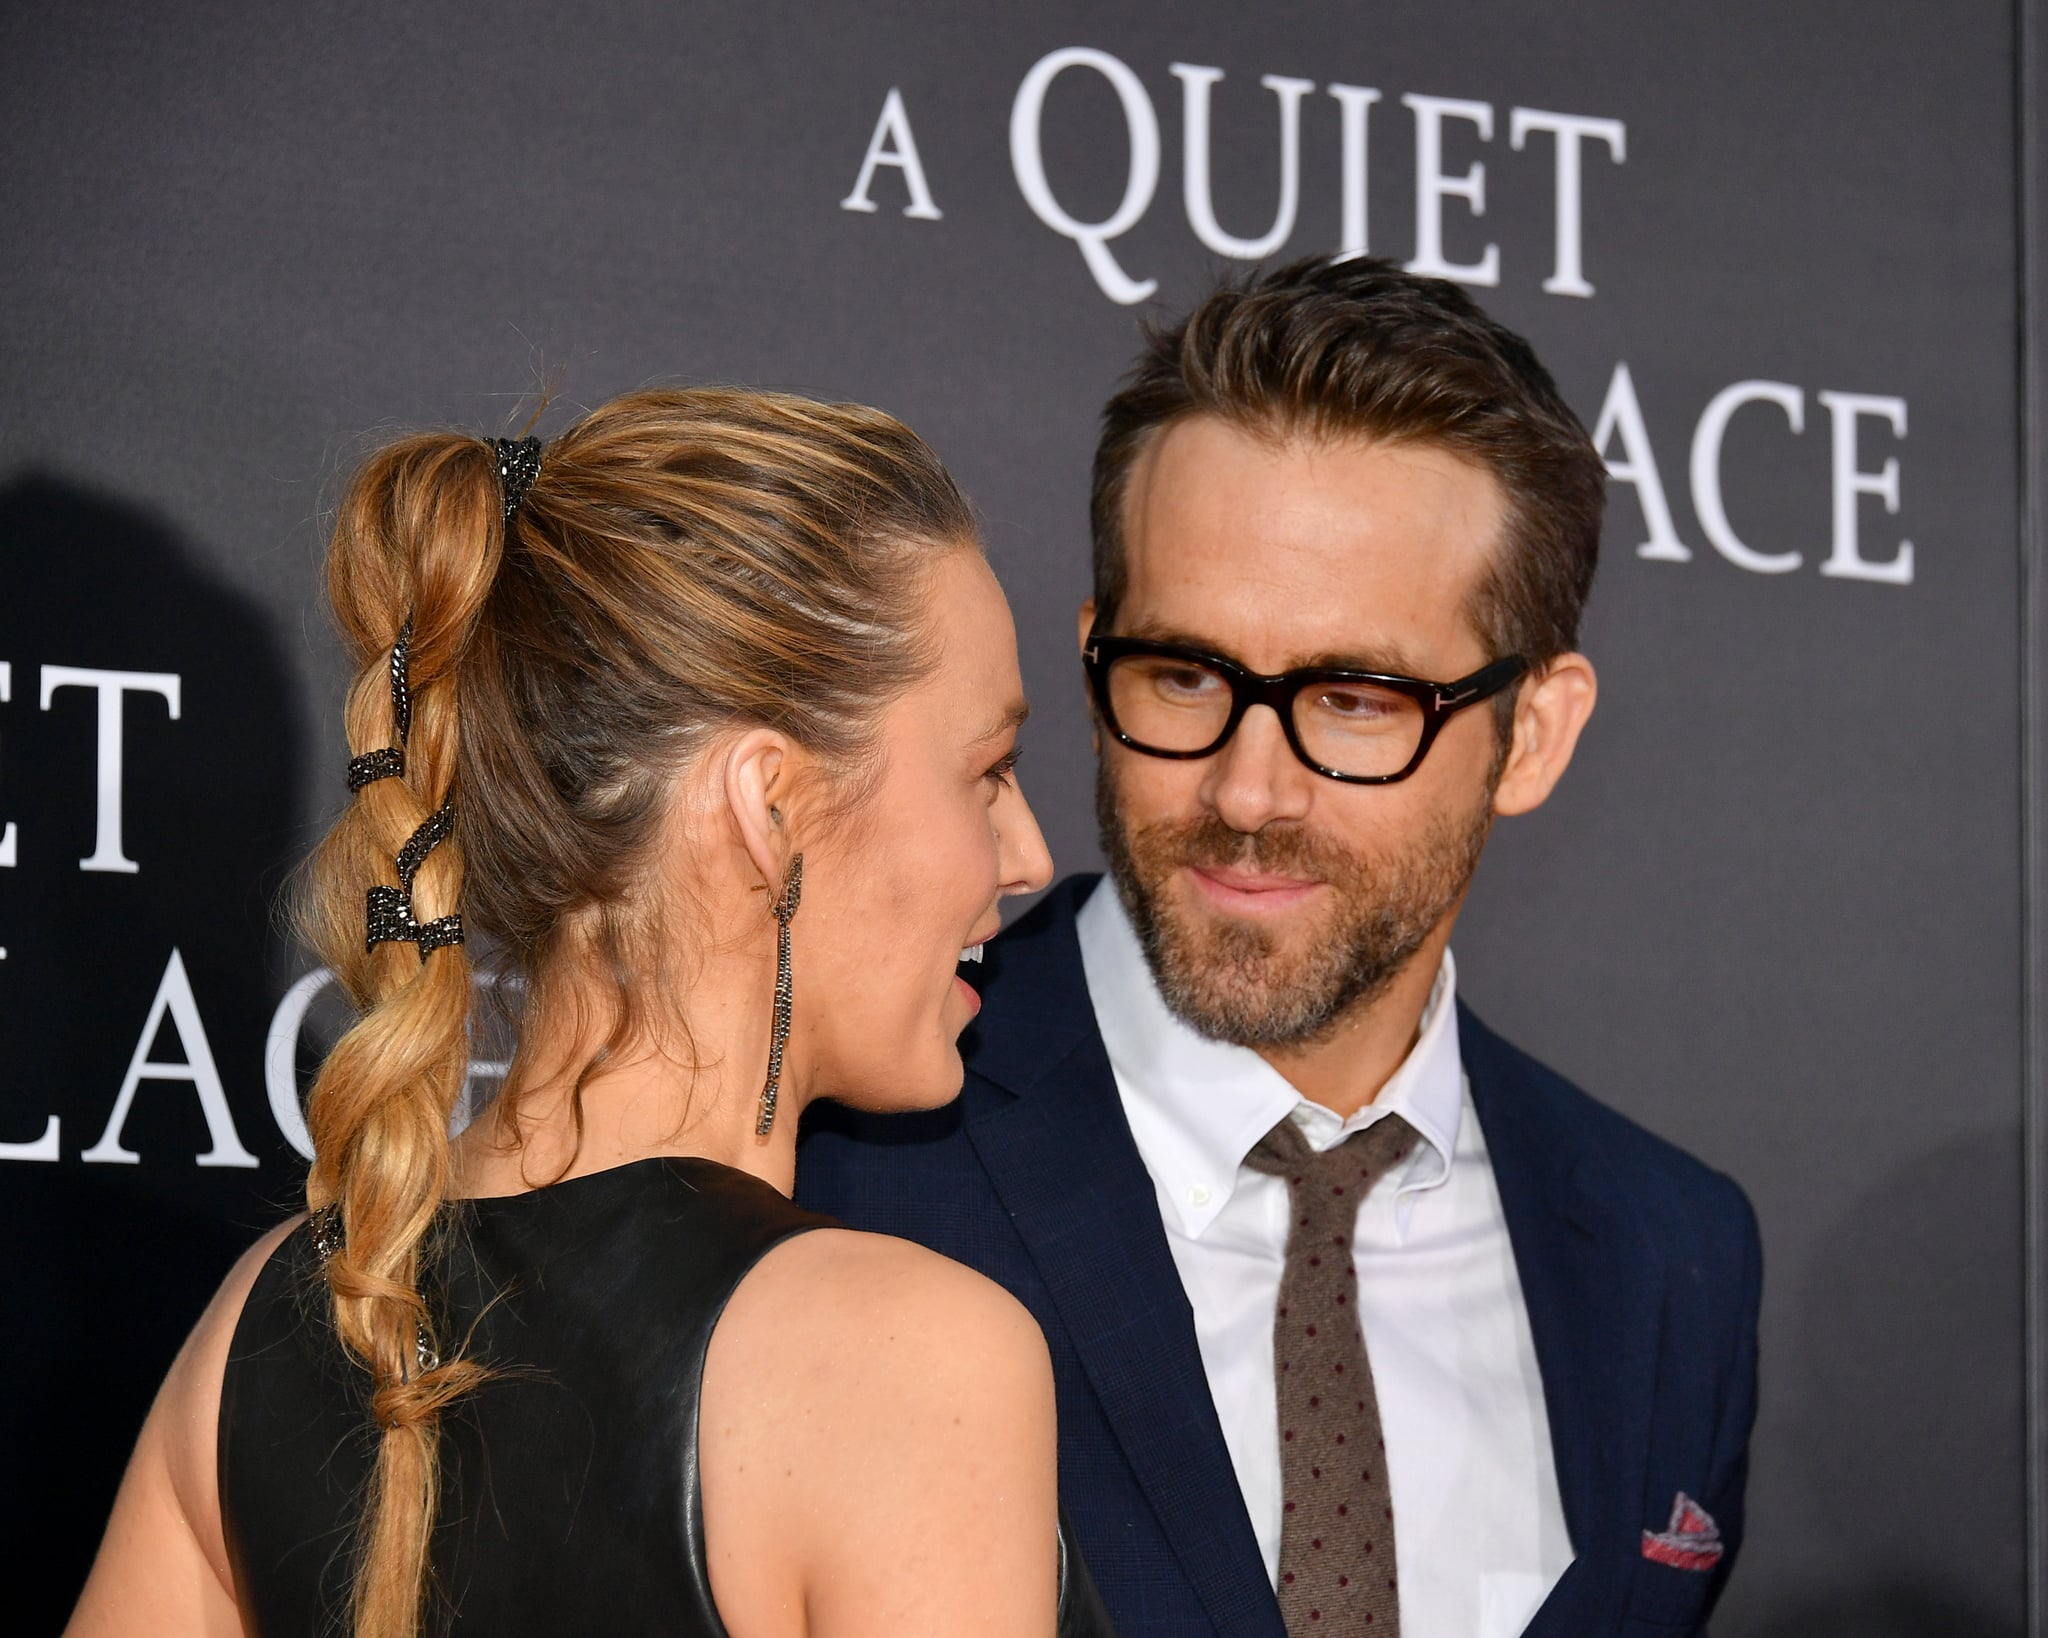 blake lively teases ryan reynolds on instagram popsugar celebrity. Black Bedroom Furniture Sets. Home Design Ideas